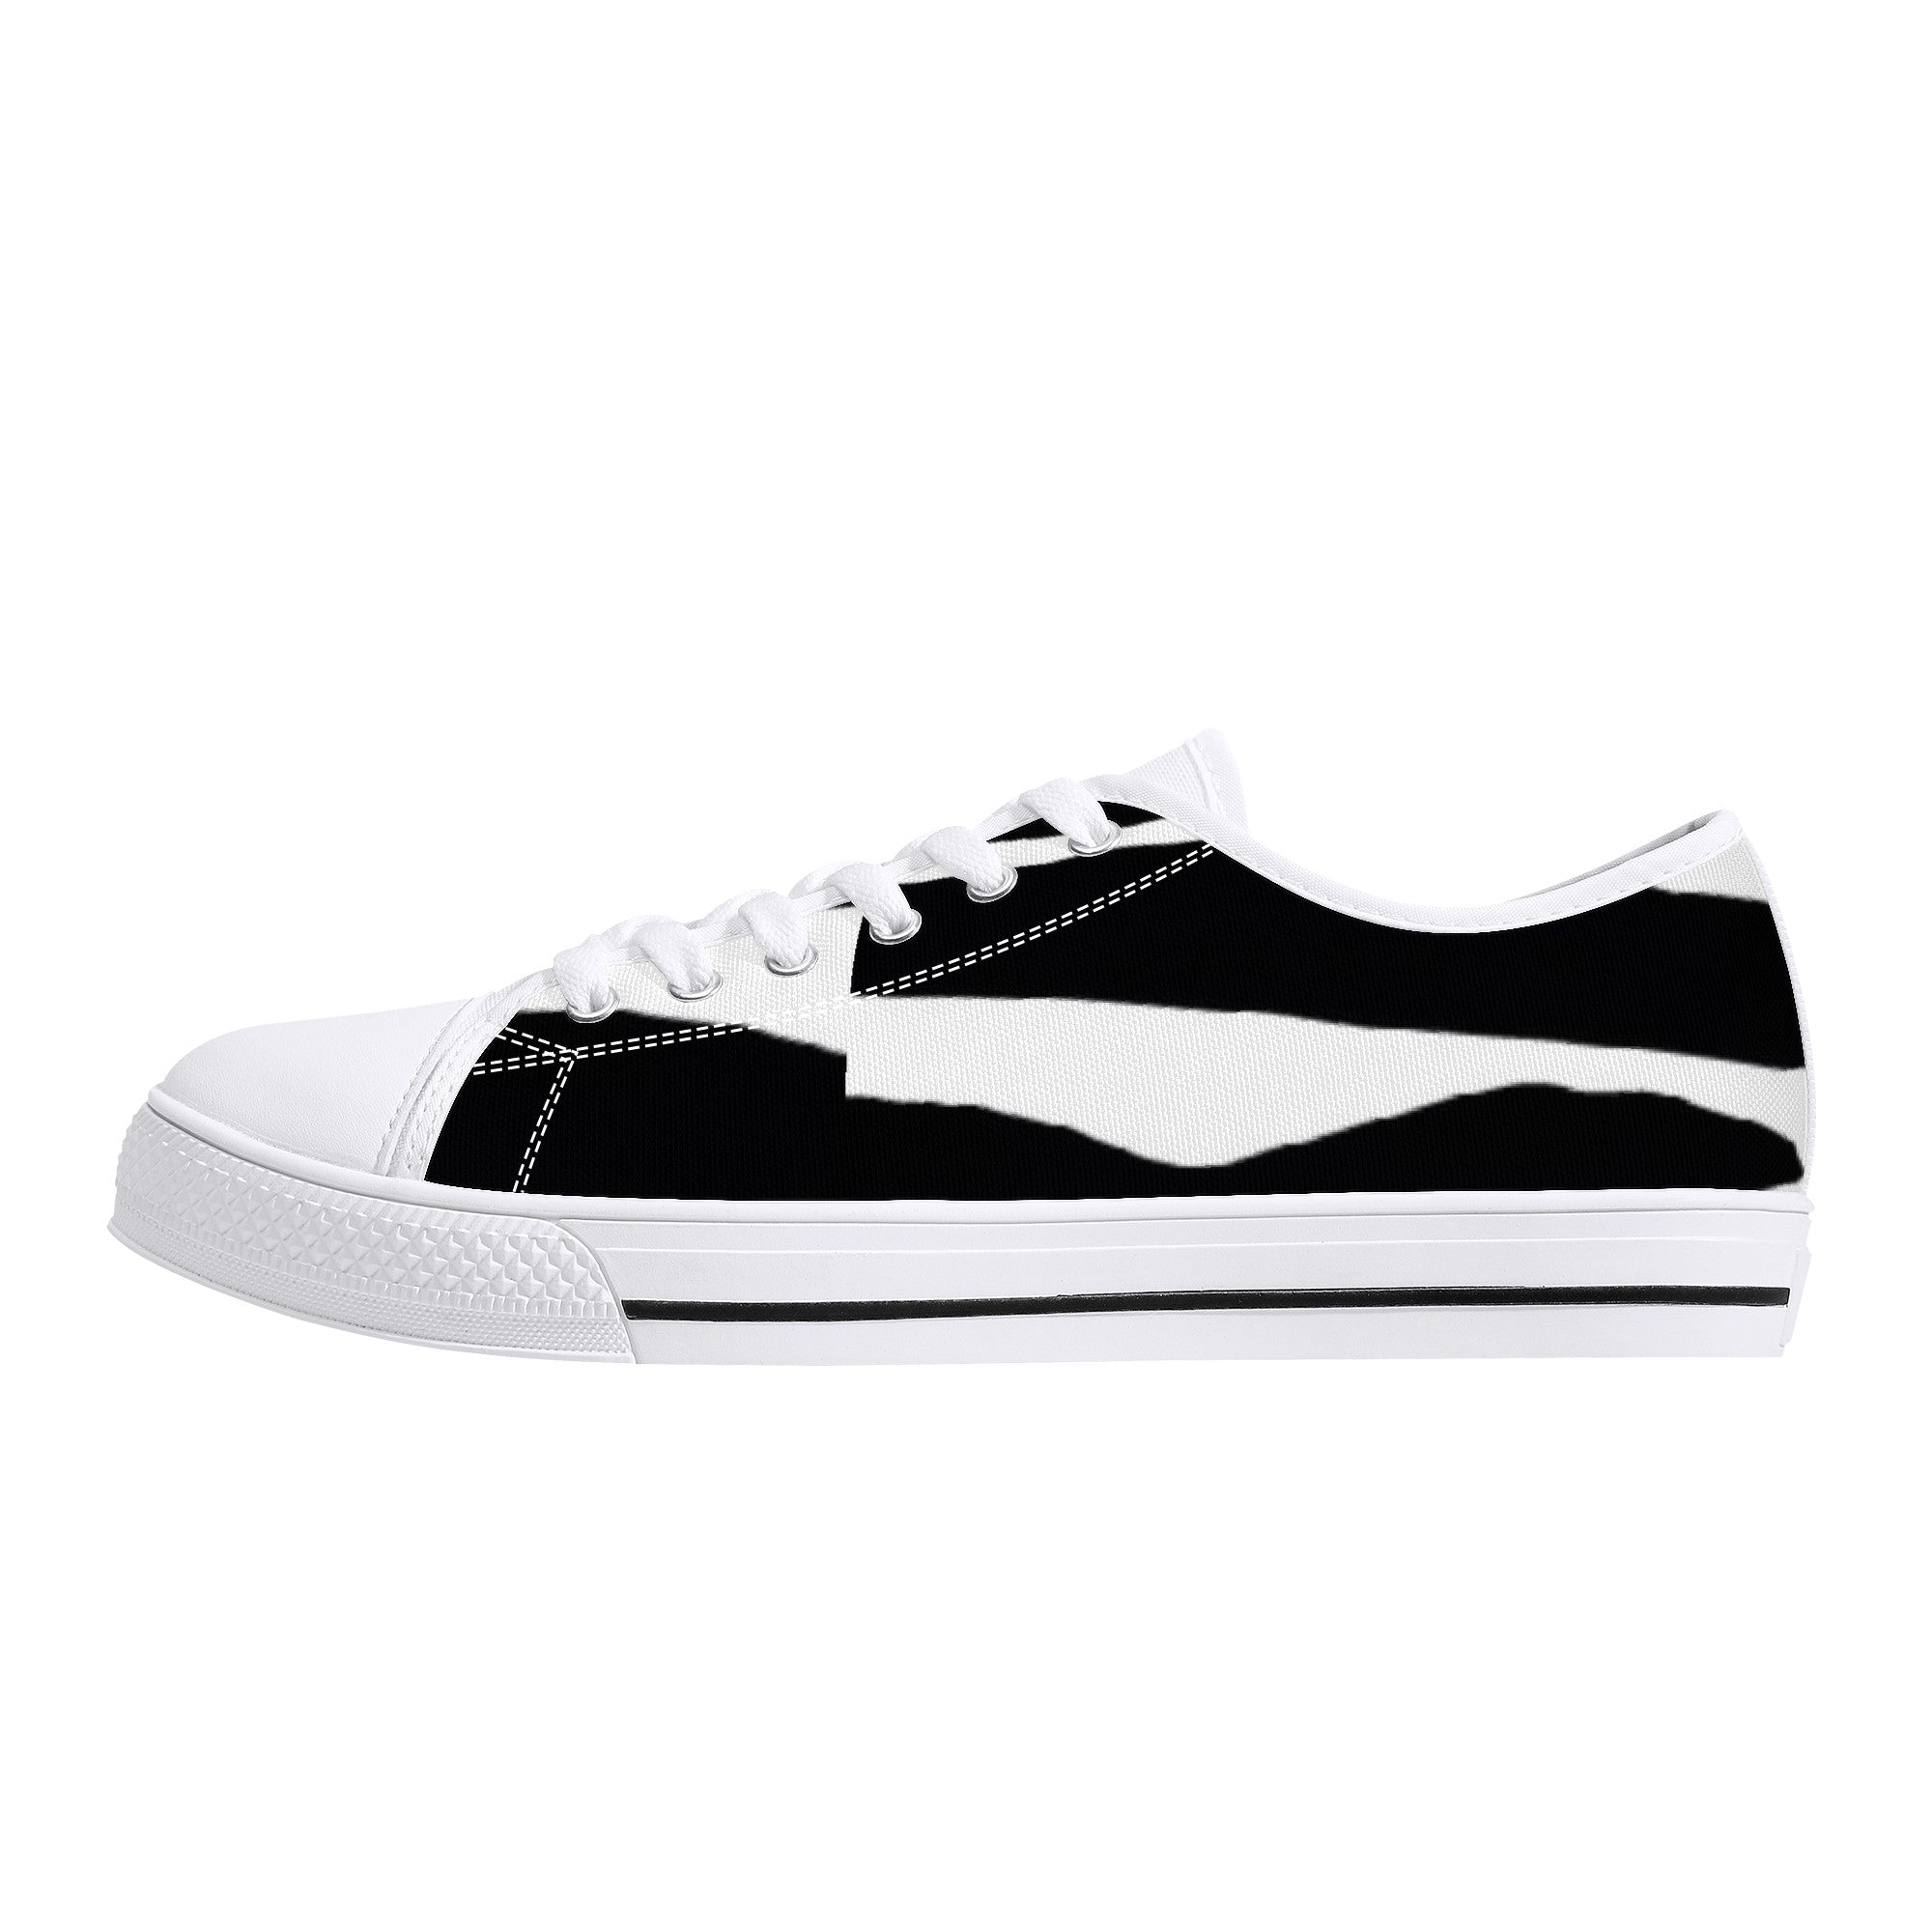 D24 Rubber Outsoles Low-Top Canvas Shoes  Black and White HAPPIER FEELINGS